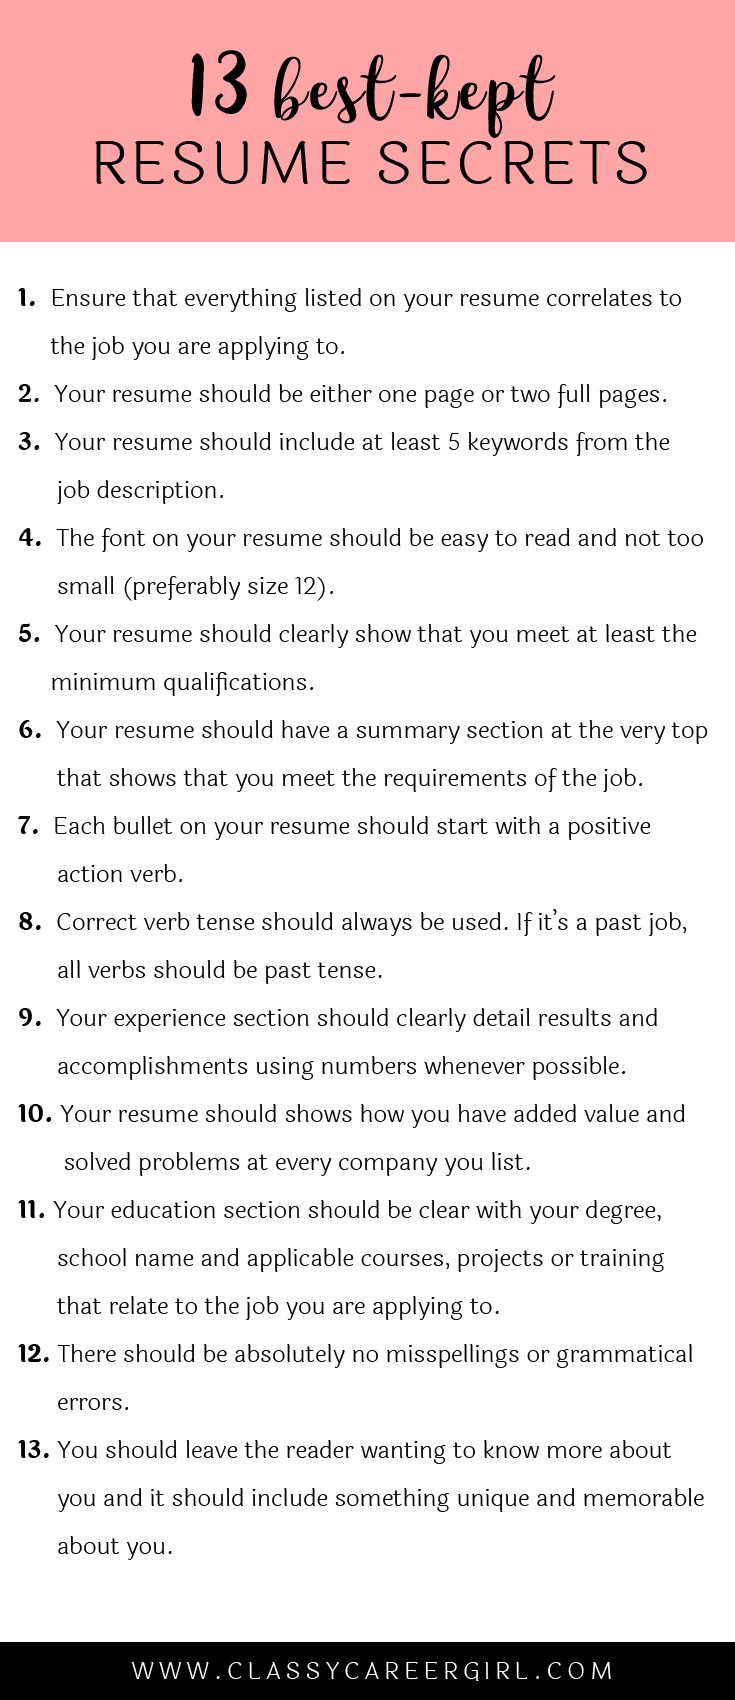 Opposenewapstandardsus  Wonderful  Ideas About Resume On Pinterest  Cv Format Resume  With Exquisite Some Hiring Managers Will Toss Your Resume Out If You Dont Know These  With Archaic Stagehand Resume Also Monster Search Resumes In Addition Resume For A Cook And How To Create A Perfect Resume As Well As Store Manager Resume Sample Additionally Transfer Student Resume From Pinterestcom With Opposenewapstandardsus  Exquisite  Ideas About Resume On Pinterest  Cv Format Resume  With Archaic Some Hiring Managers Will Toss Your Resume Out If You Dont Know These  And Wonderful Stagehand Resume Also Monster Search Resumes In Addition Resume For A Cook From Pinterestcom